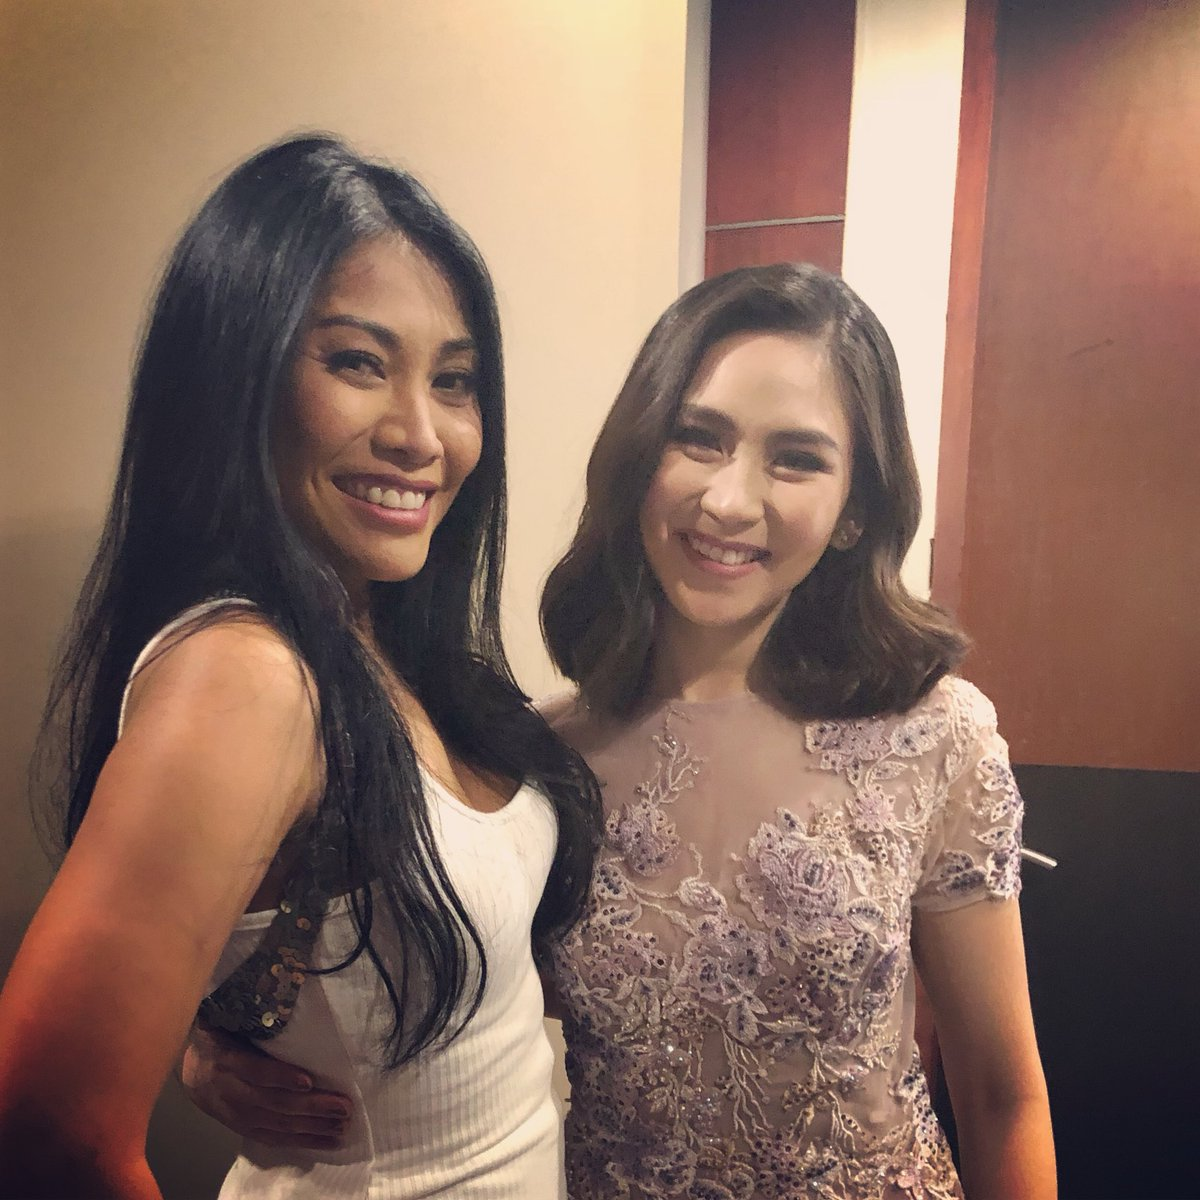 Met the very talented and kind Sarah Geronimo @JustSarahG at @ASAPOFFICIAL show today 💝💝💝